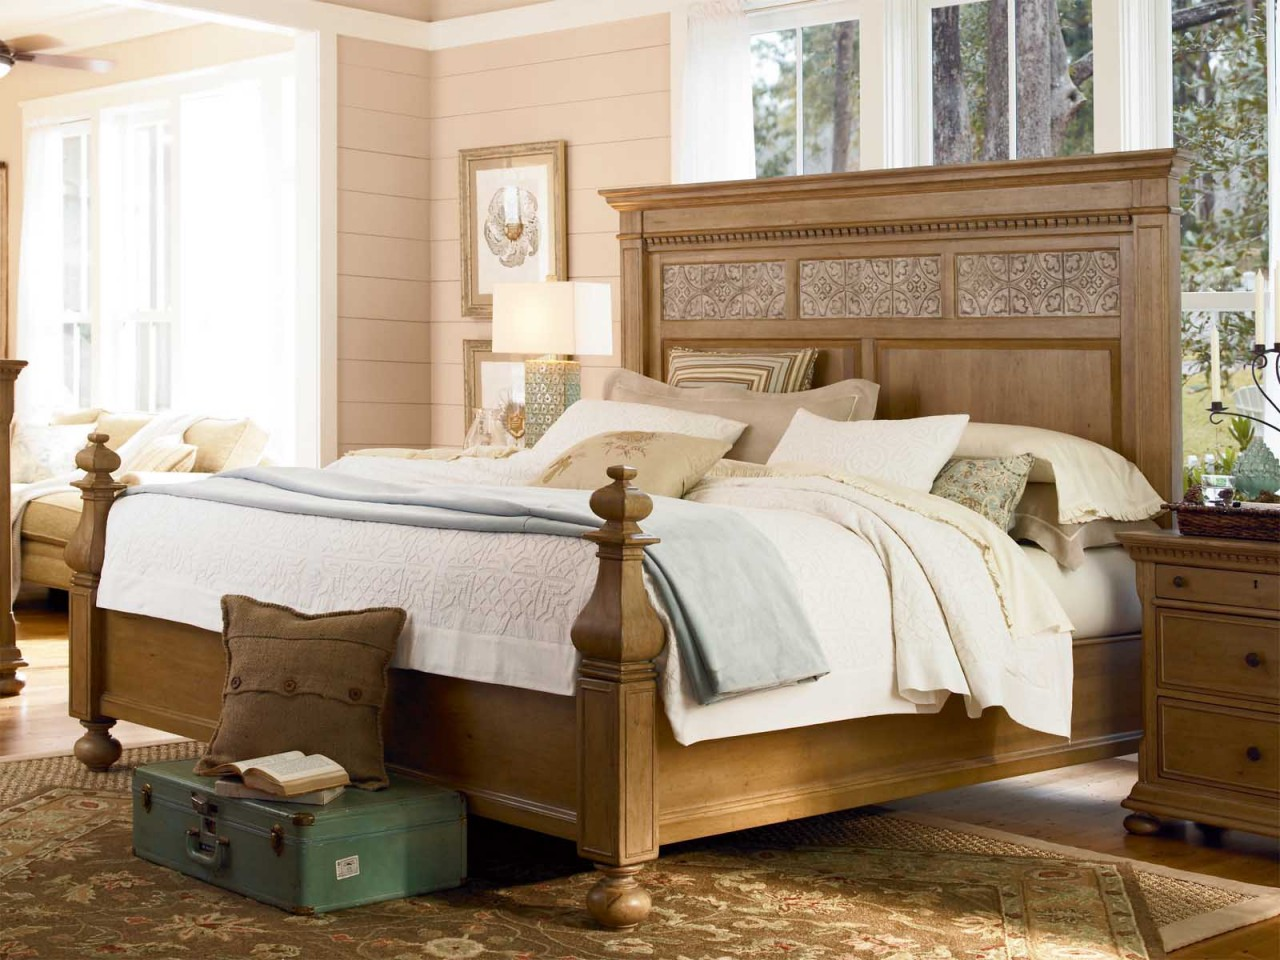 Image of: Home paula deen bedroom furniture